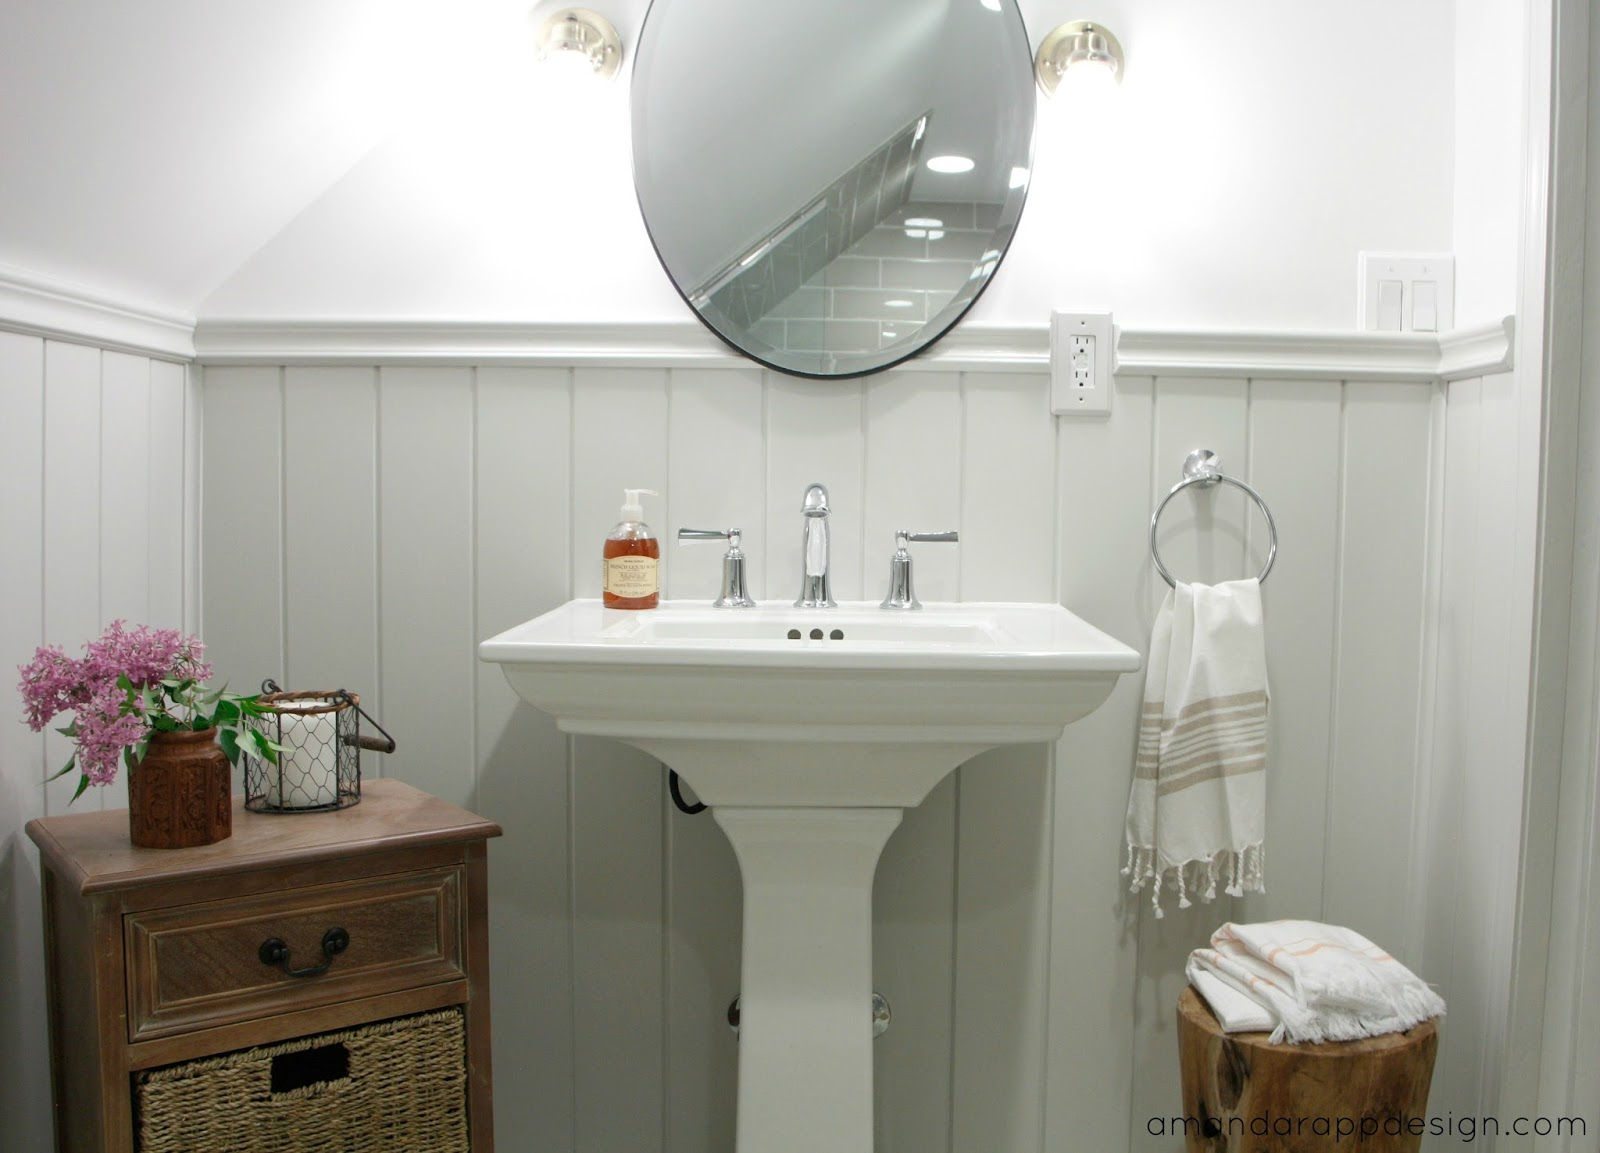 Amanda Rapp Design: Finished Classic Cottagey Bathroom